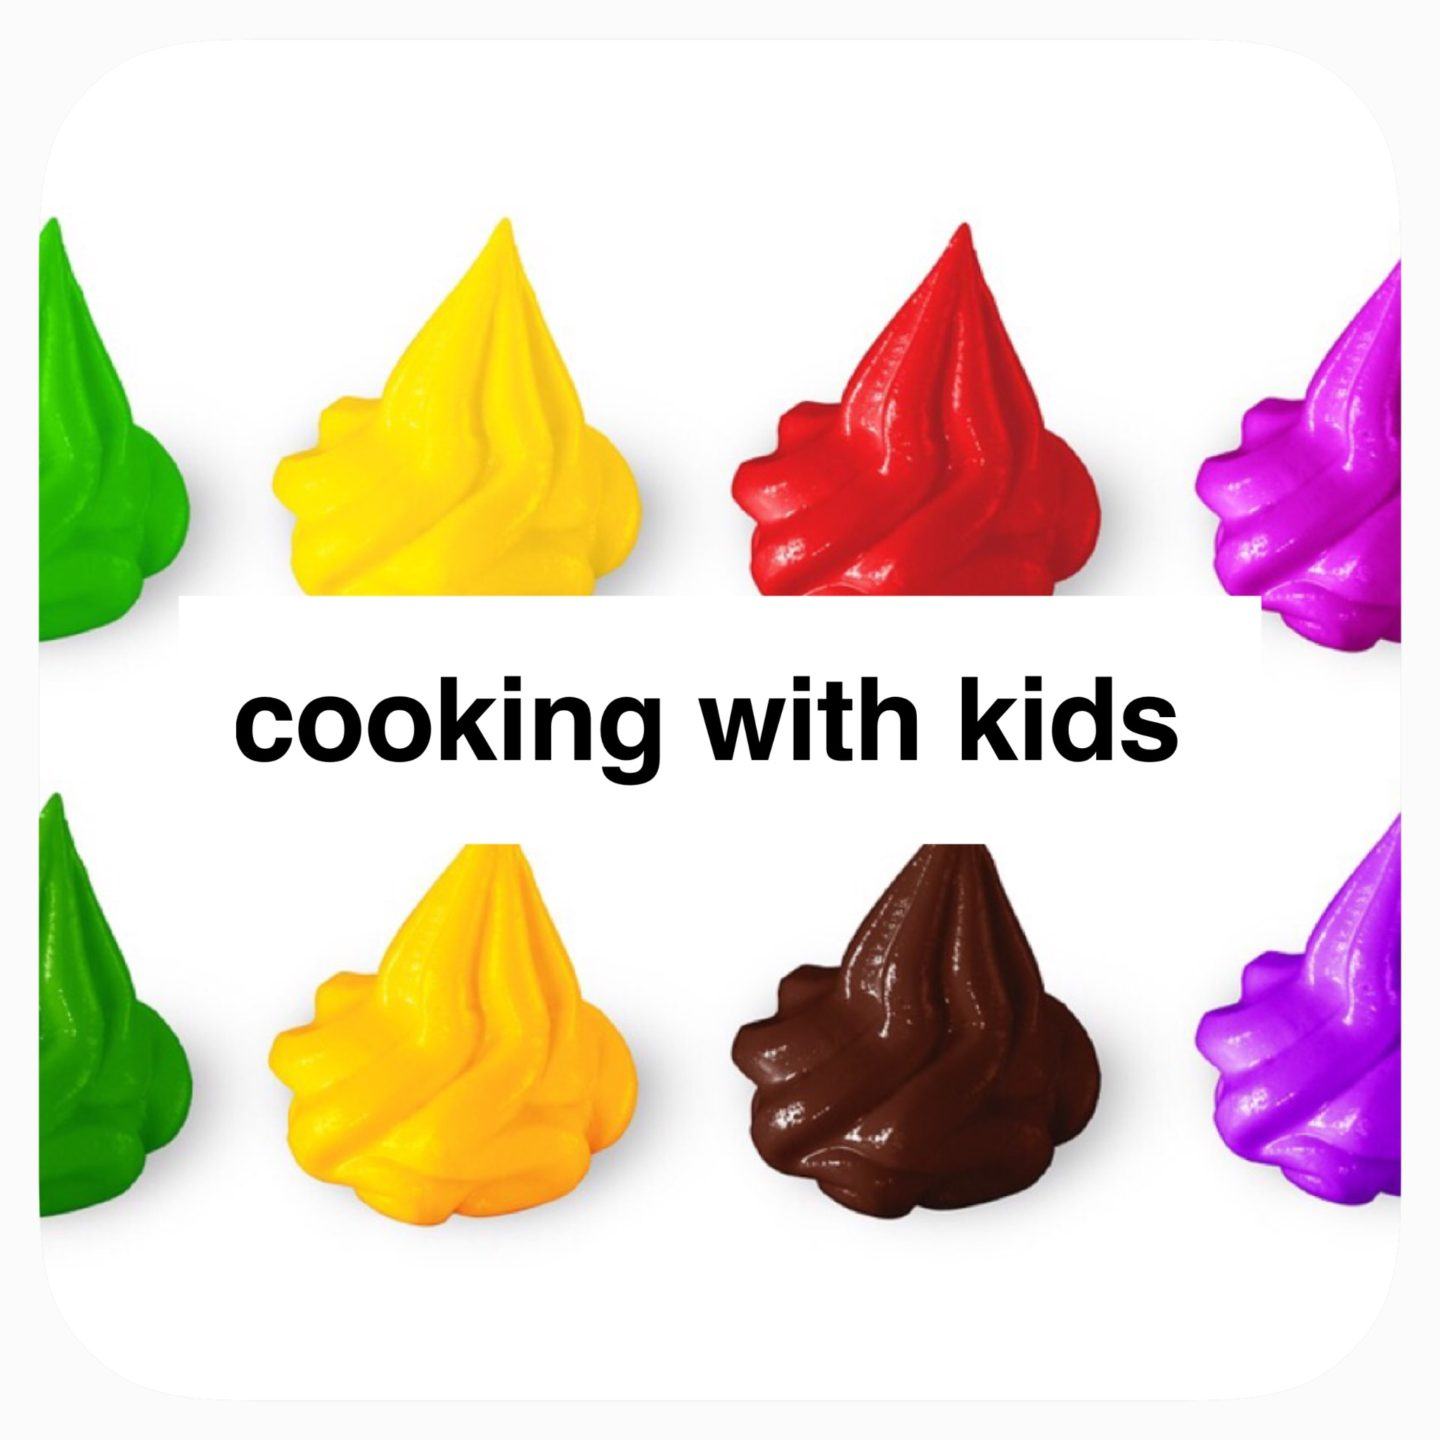 Cooking with kids tips from @how2playtoday